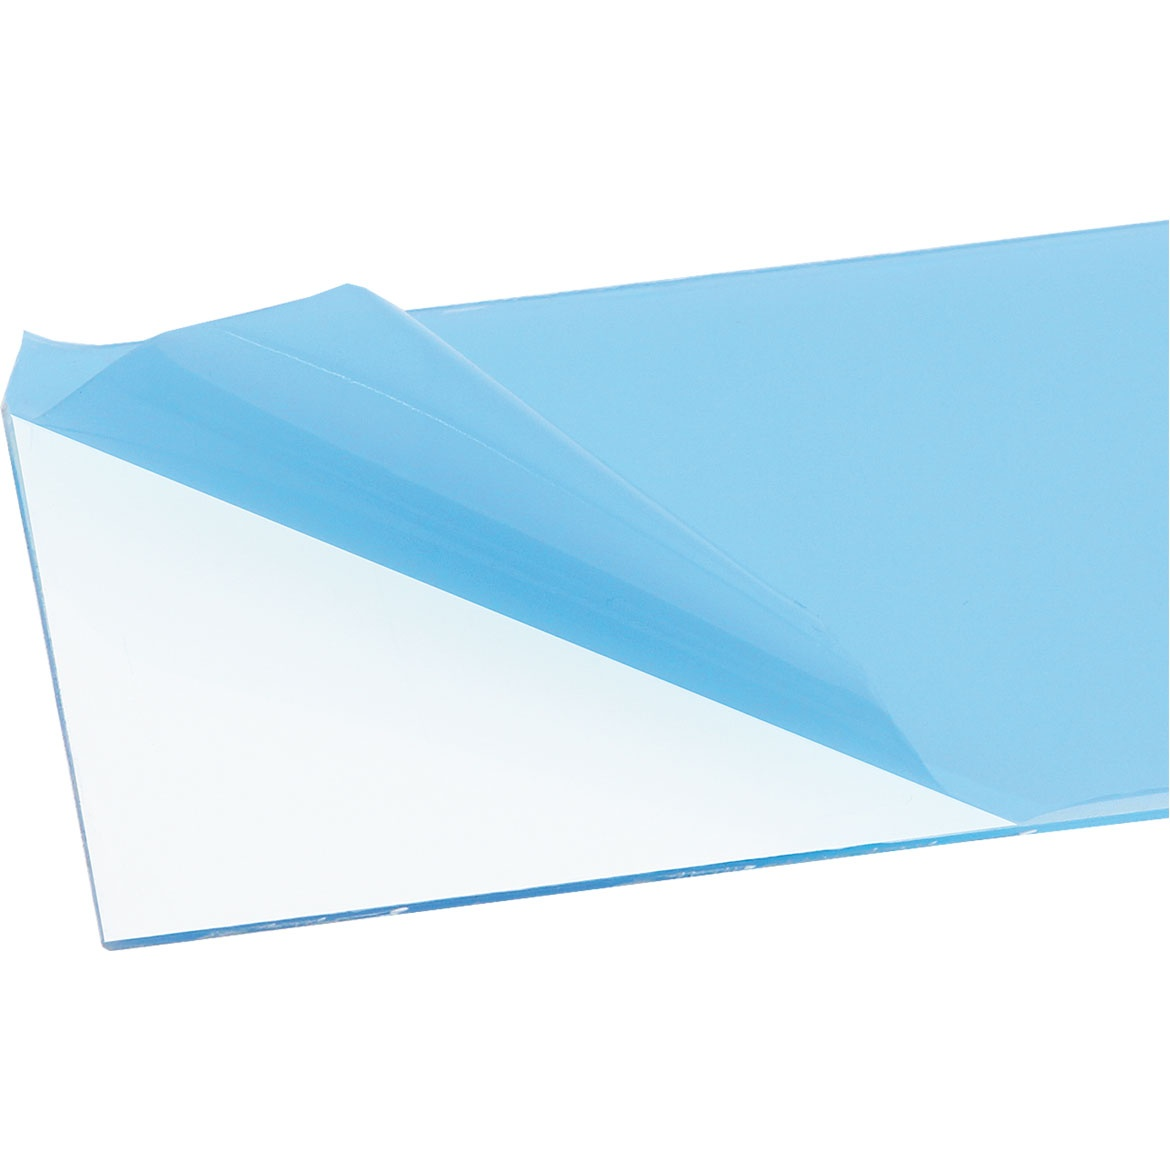 VIVAK-Platten transparent 1,0 mm ca.250 x 500 mm